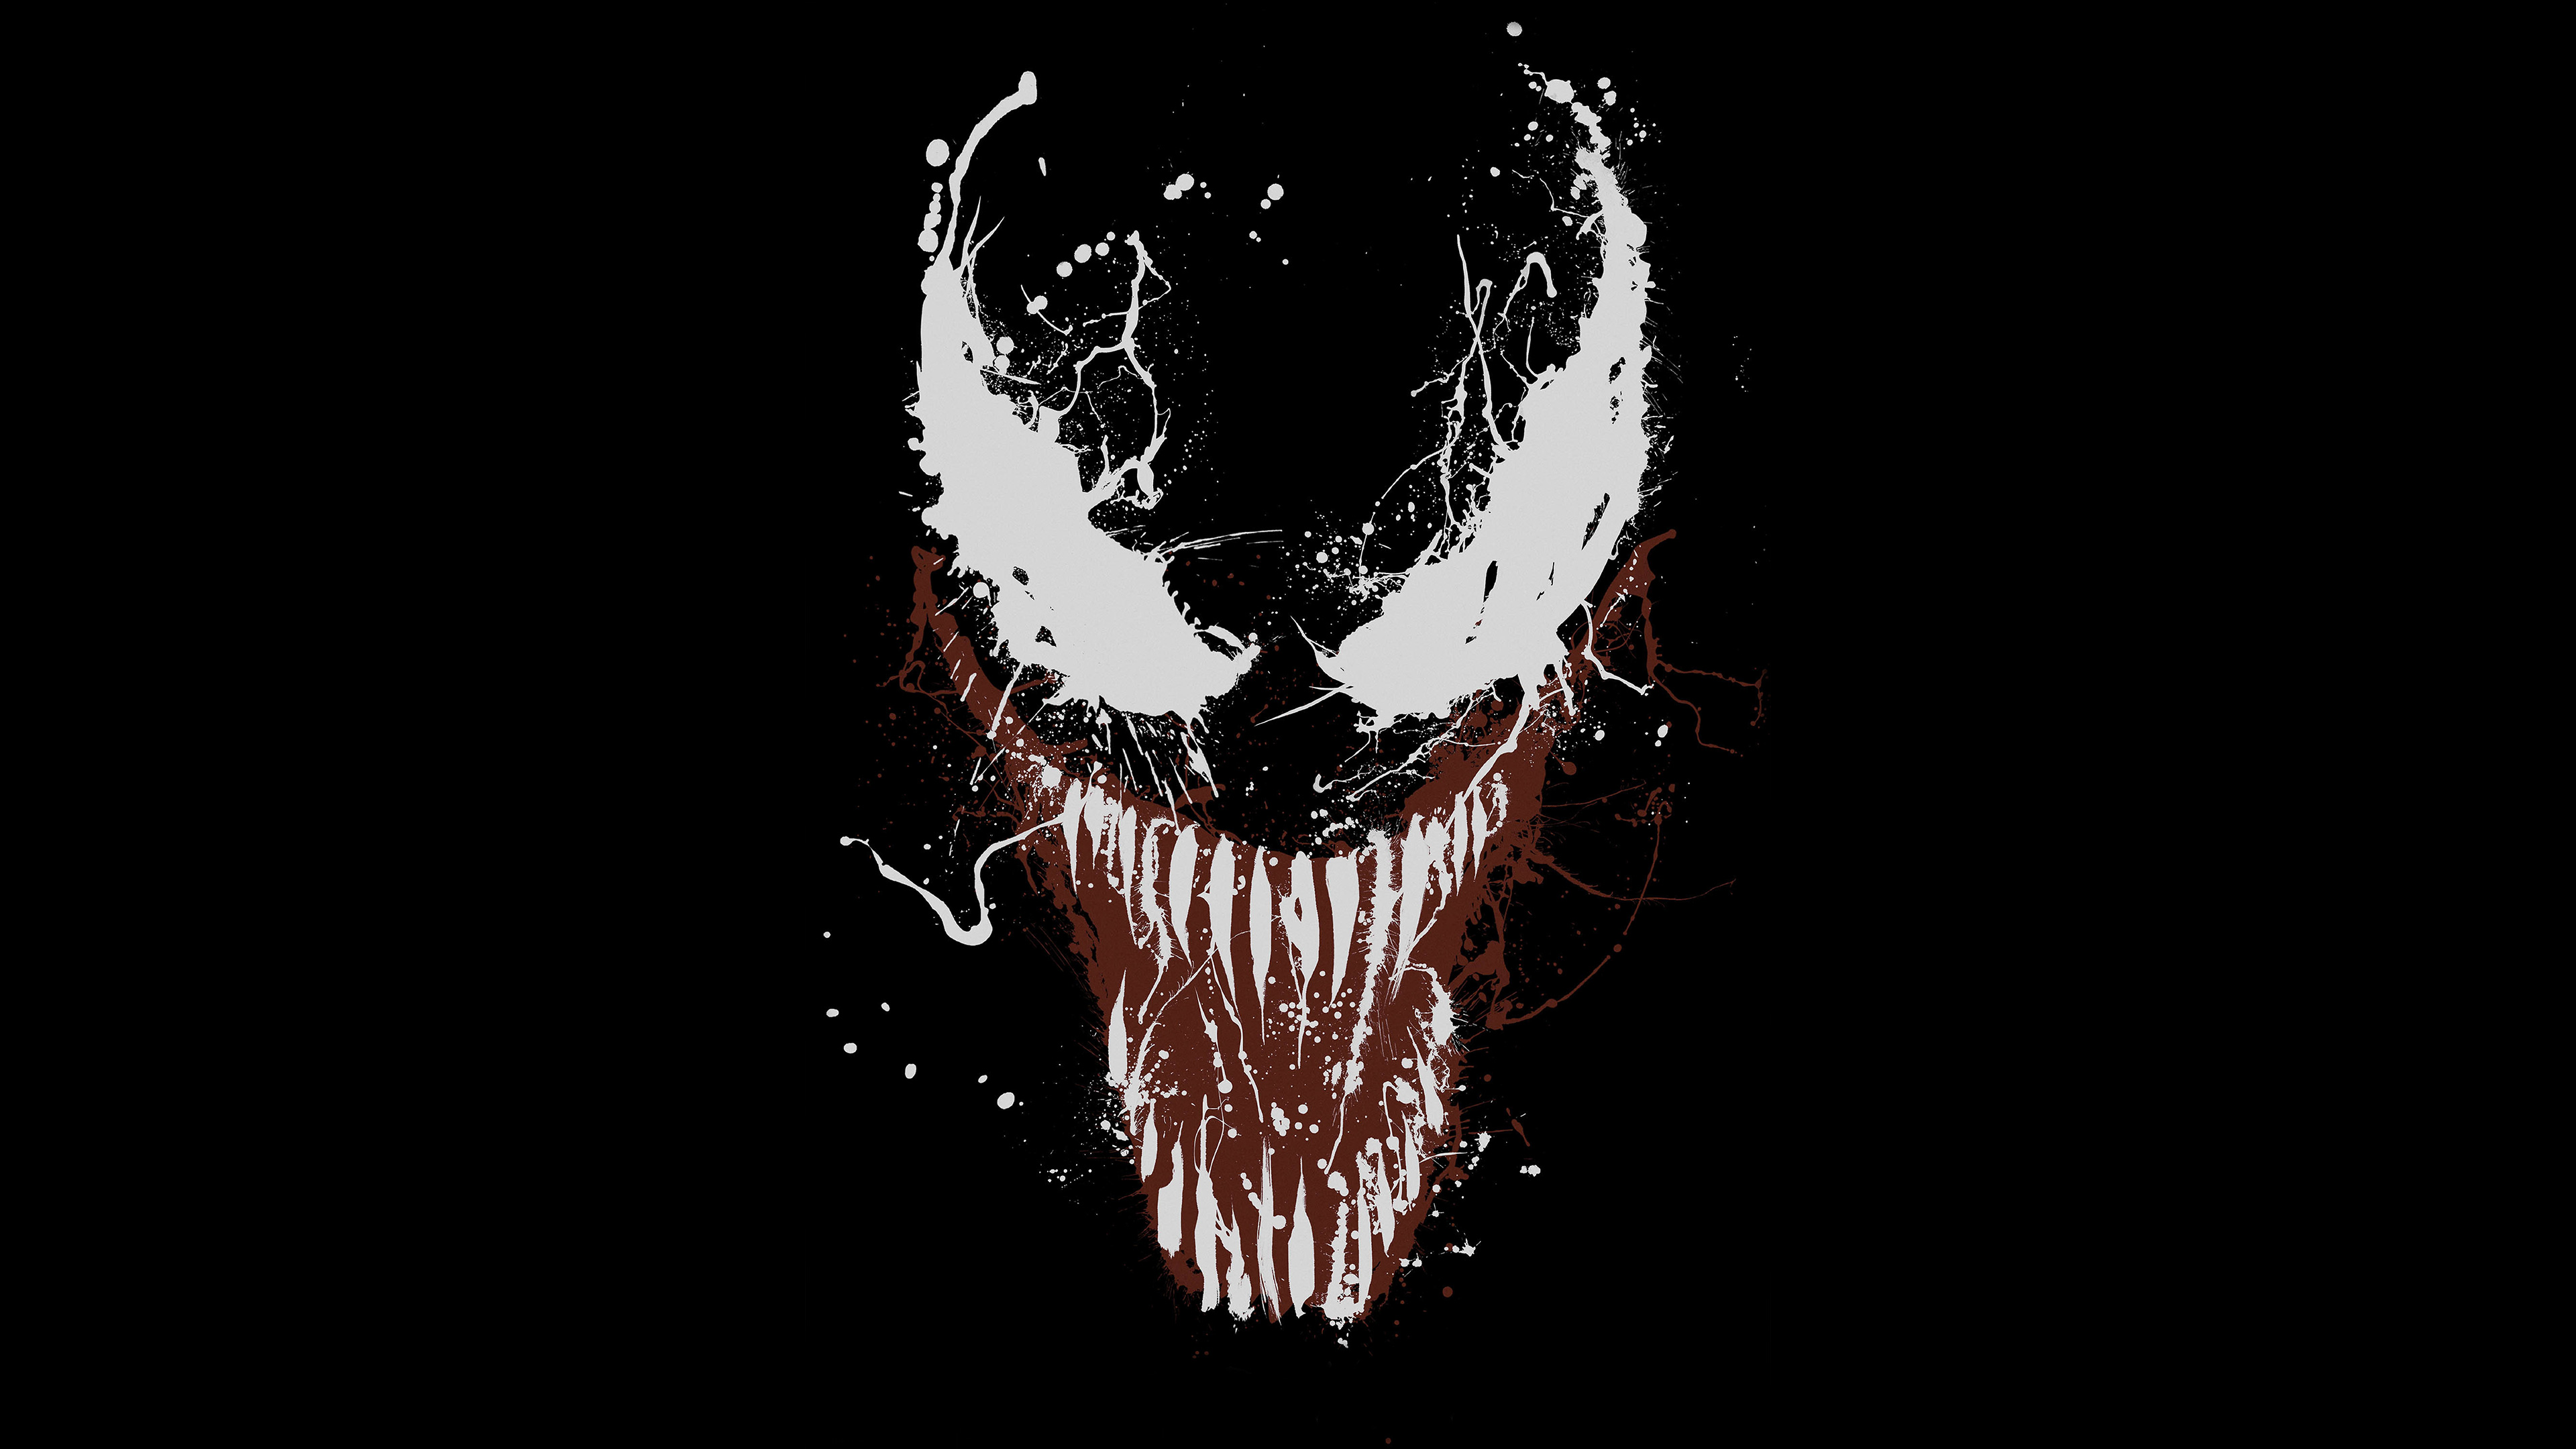 Venom movie poster 2018 hd movies 4k wallpapers images - Venom hd wallpaper android ...